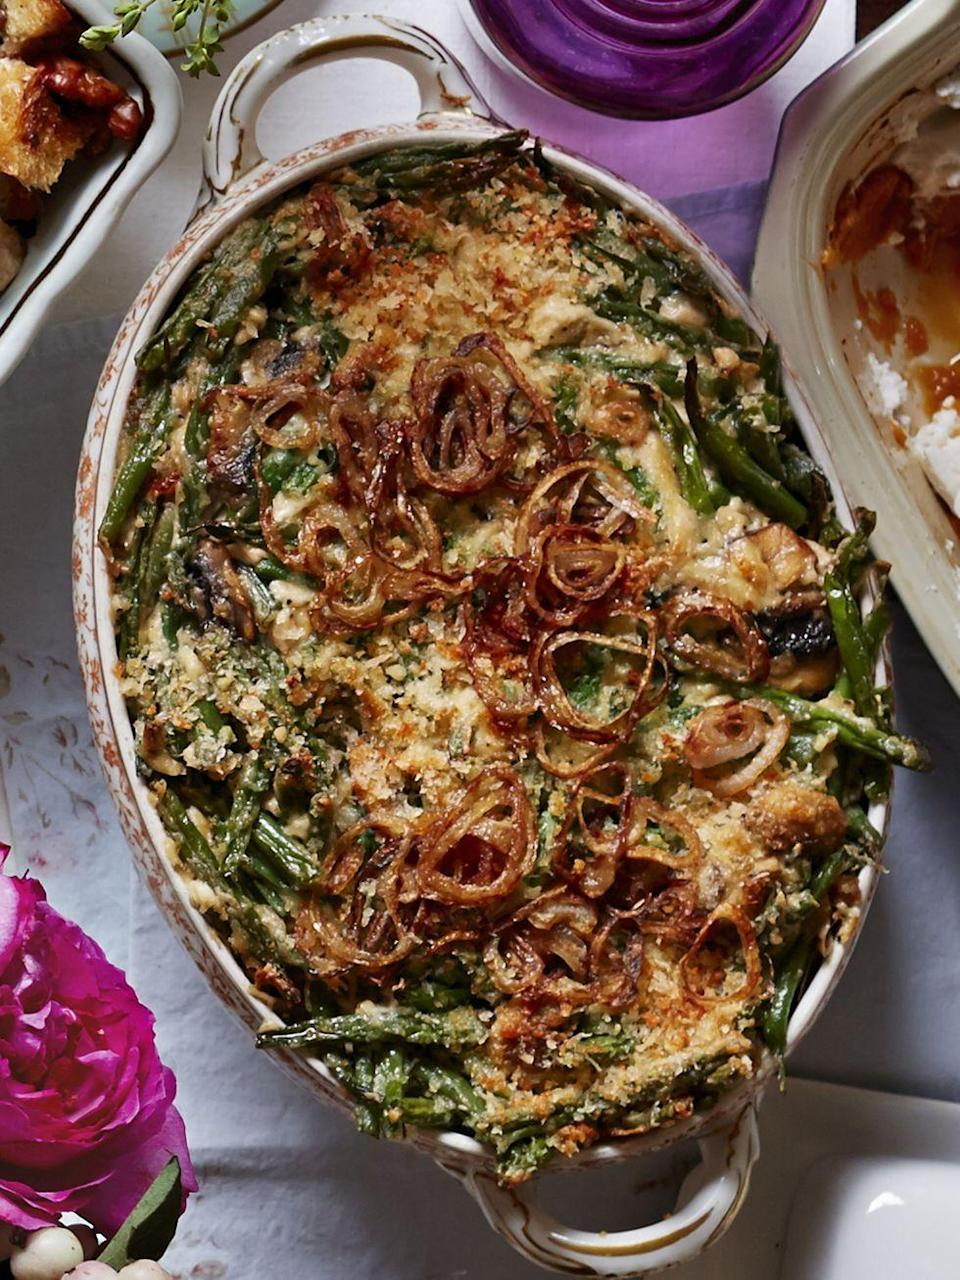 """<p>The traditional mix of green beans, onions, and mushrooms is amped up with caramelized onions and a touch of Parmesan cheese. </p><p><strong><a href=""""https://www.countryliving.com/food-drinks/recipes/a5868/green-bean-casserole-fried-shallots-recipe-clx1114/"""" rel=""""nofollow noopener"""" target=""""_blank"""" data-ylk=""""slk:Get the recipe"""" class=""""link rapid-noclick-resp"""">Get the recipe</a>.</strong></p><p><strong><a class=""""link rapid-noclick-resp"""" href=""""https://www.amazon.com/Bakeware-Krokori-Rectangular-Aquamarine-Rectangula/dp/B074Z5X8MT/?tag=syn-yahoo-20&ascsubtag=%5Bartid%7C10050.g.3726%5Bsrc%7Cyahoo-us"""" rel=""""nofollow noopener"""" target=""""_blank"""" data-ylk=""""slk:SHOP BAKING DISHES"""">SHOP BAKING DISHES</a><br></strong></p>"""